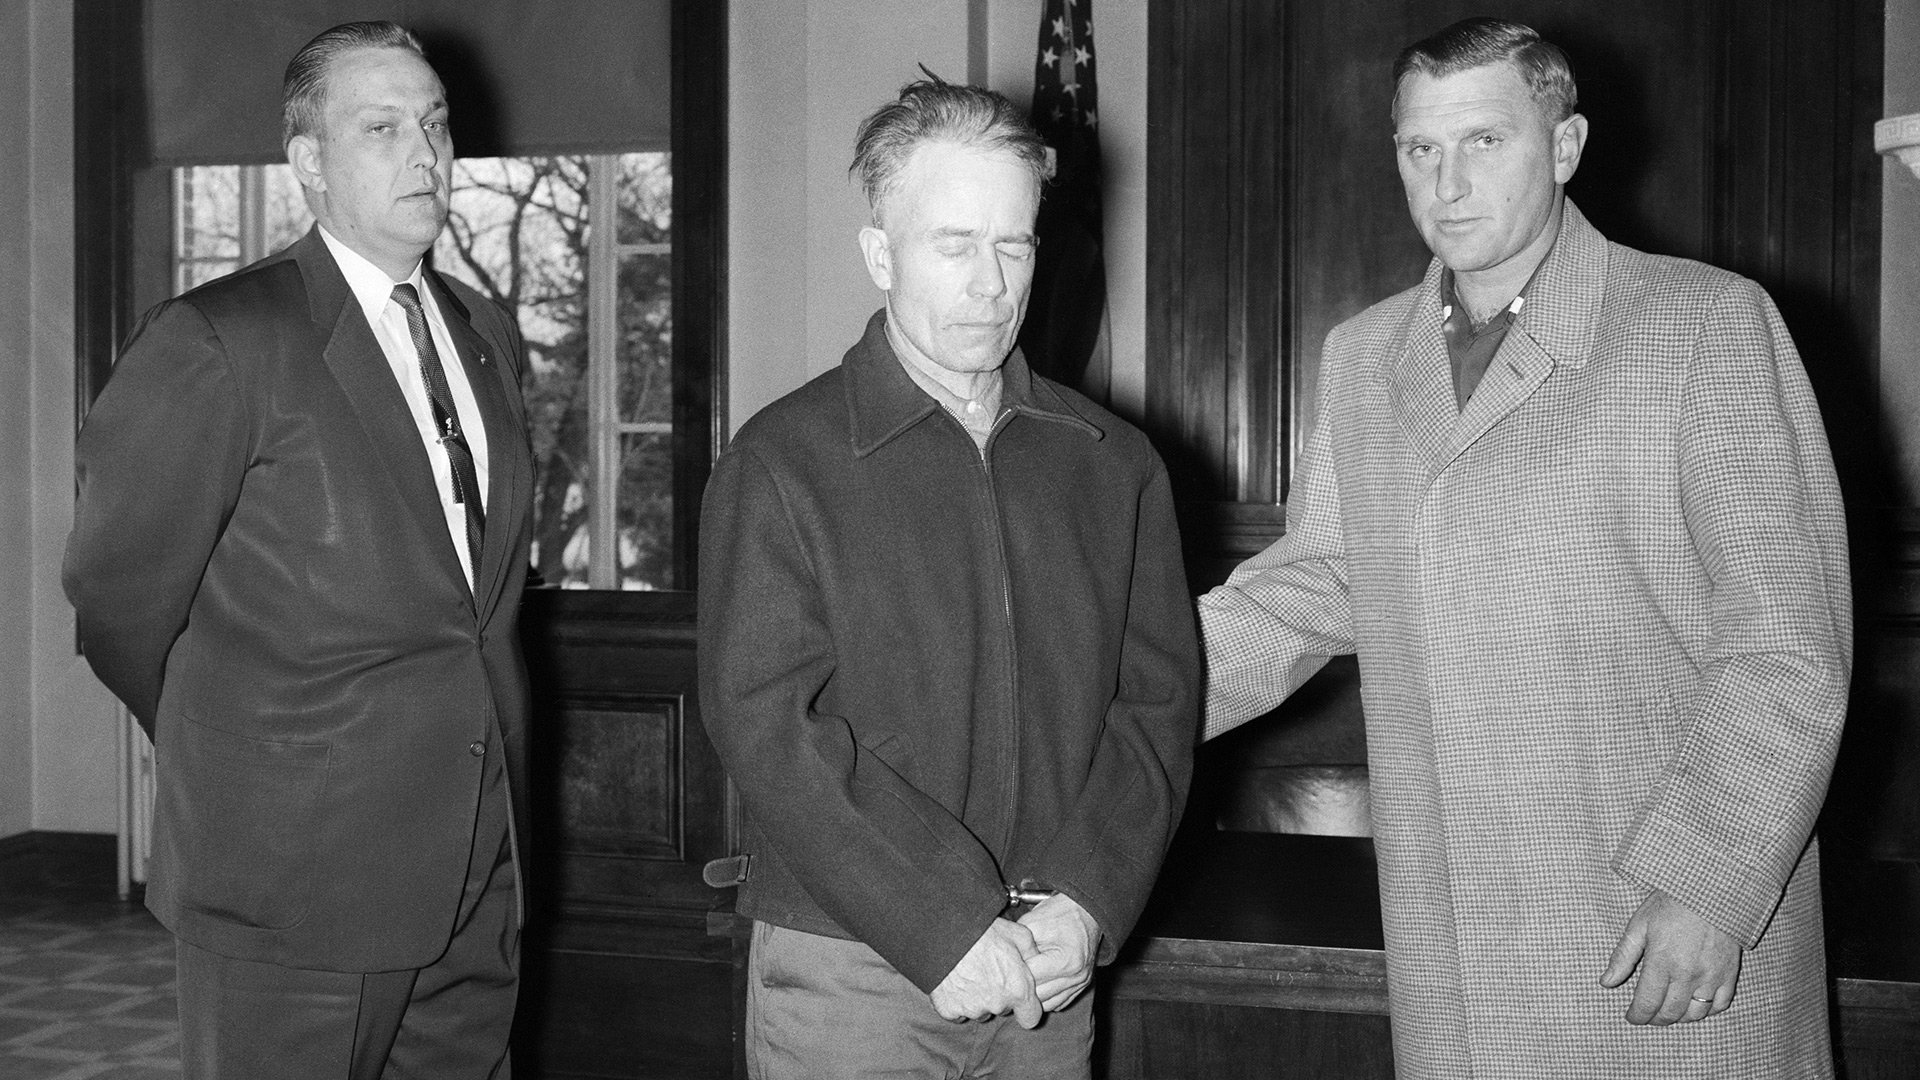 Ed Gein: The Skin-Suit-Wearing Serial Killer Who Inspired Psycho's Norman Bates